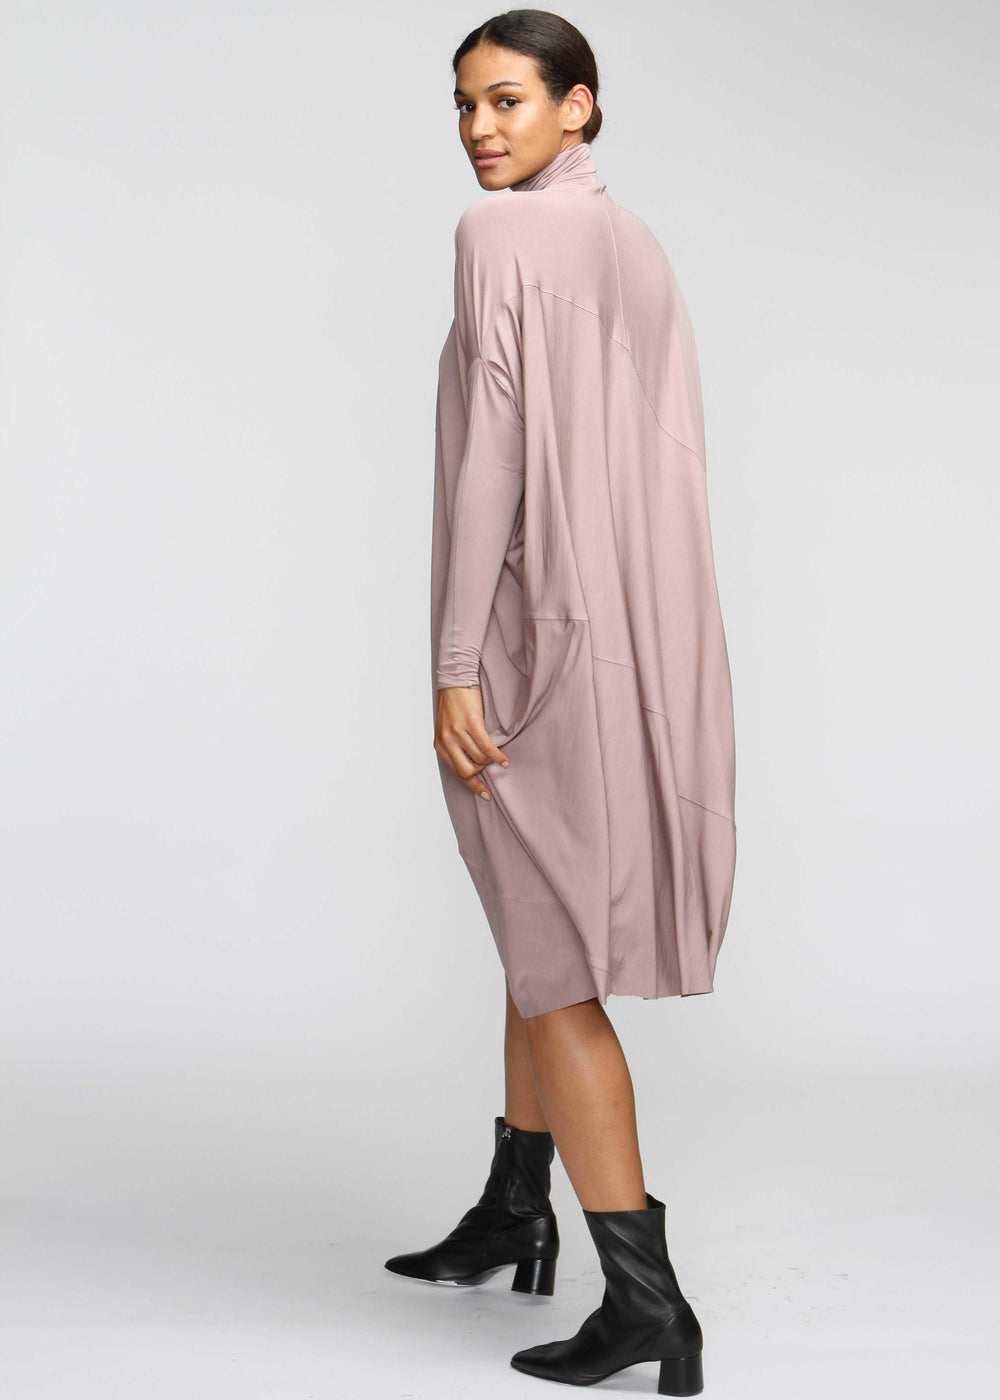 Fluid Turtleneck - Taupe - The Frock NYC